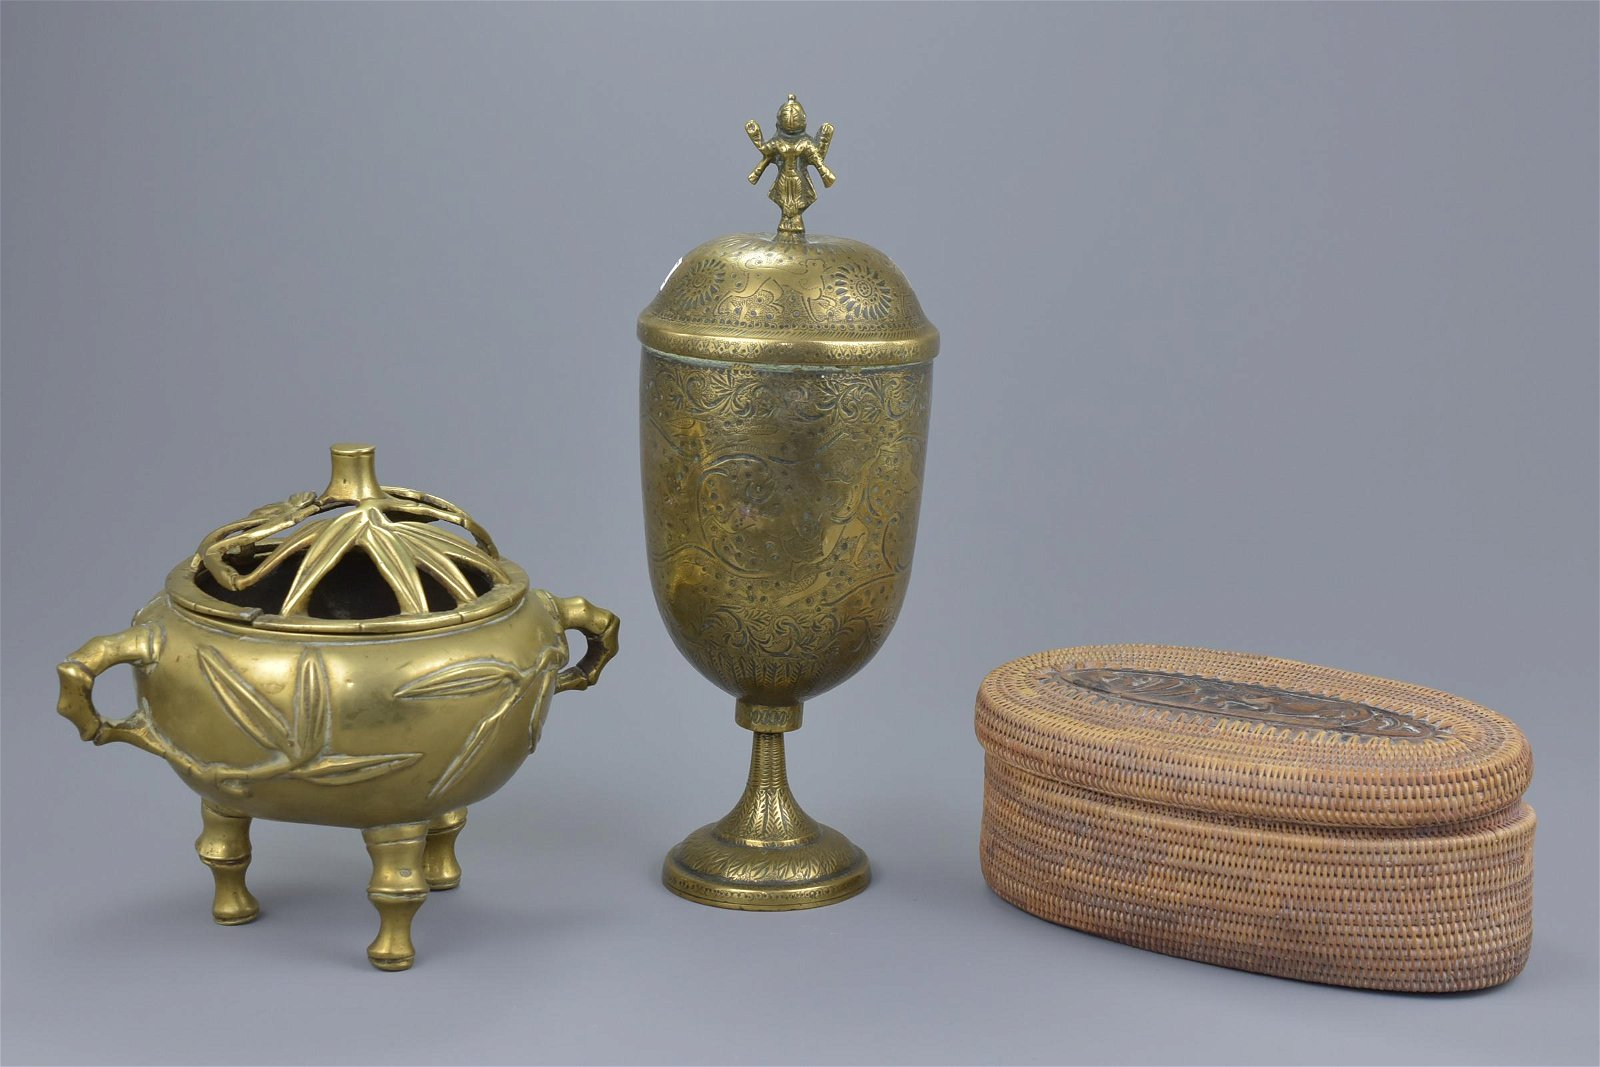 A Chinese polished bronzetripodcenser with